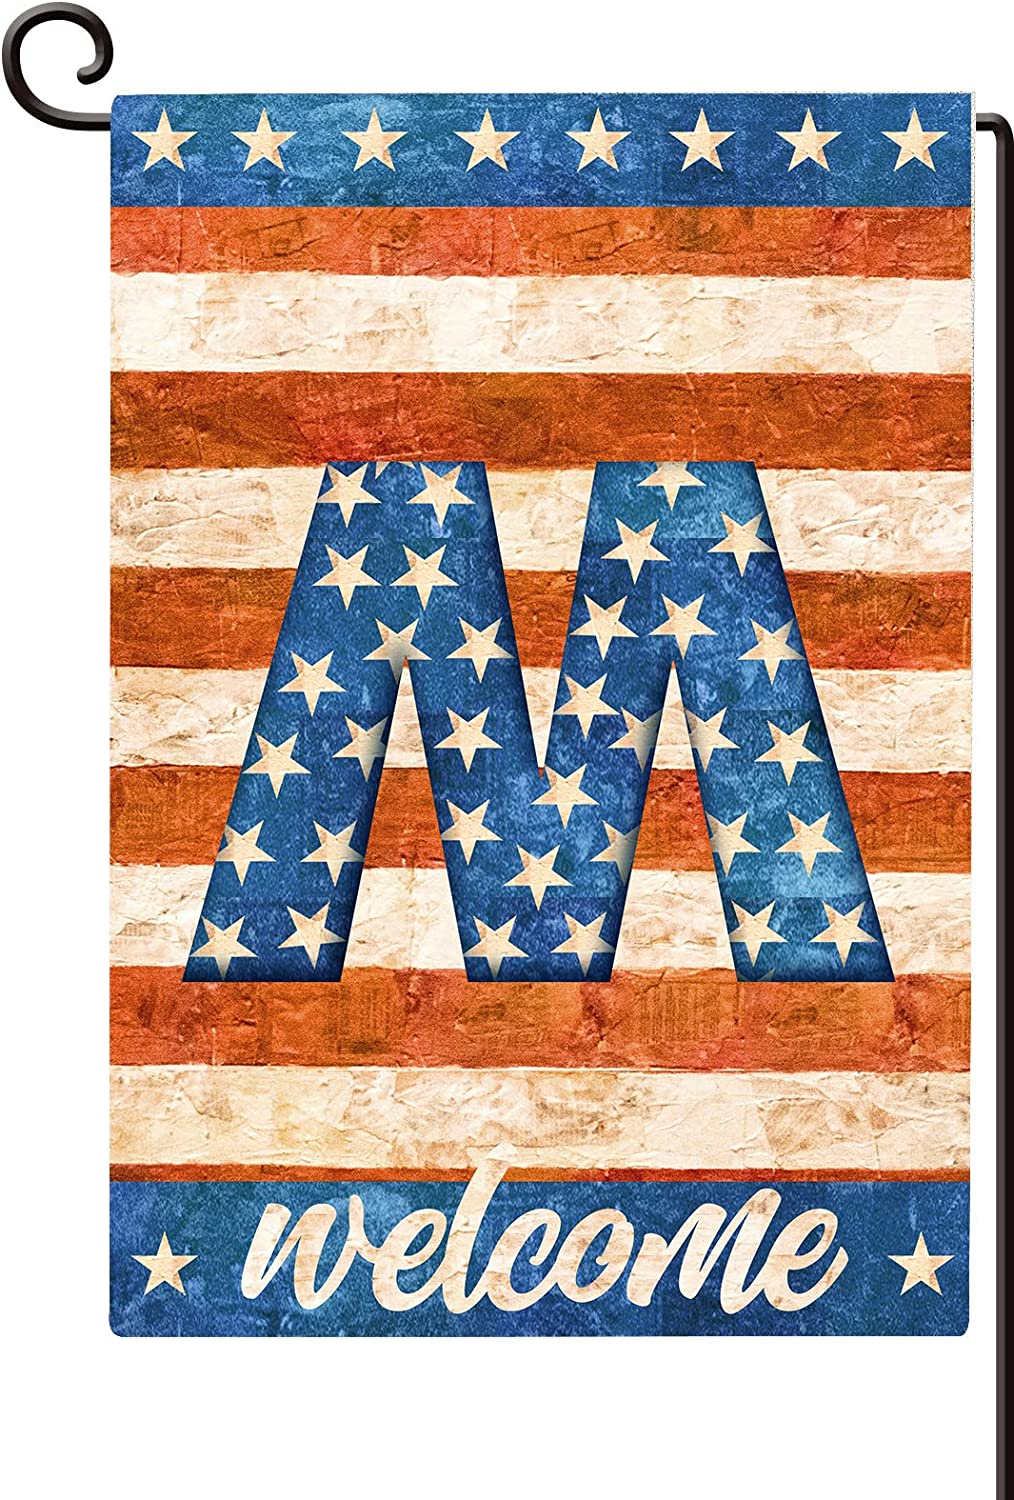 Agantree Art American Patriotic Monogram Letter M Small Garden Flag Waterproof Double Sided Yard Outdoor Decorative 12 x 18 Inch